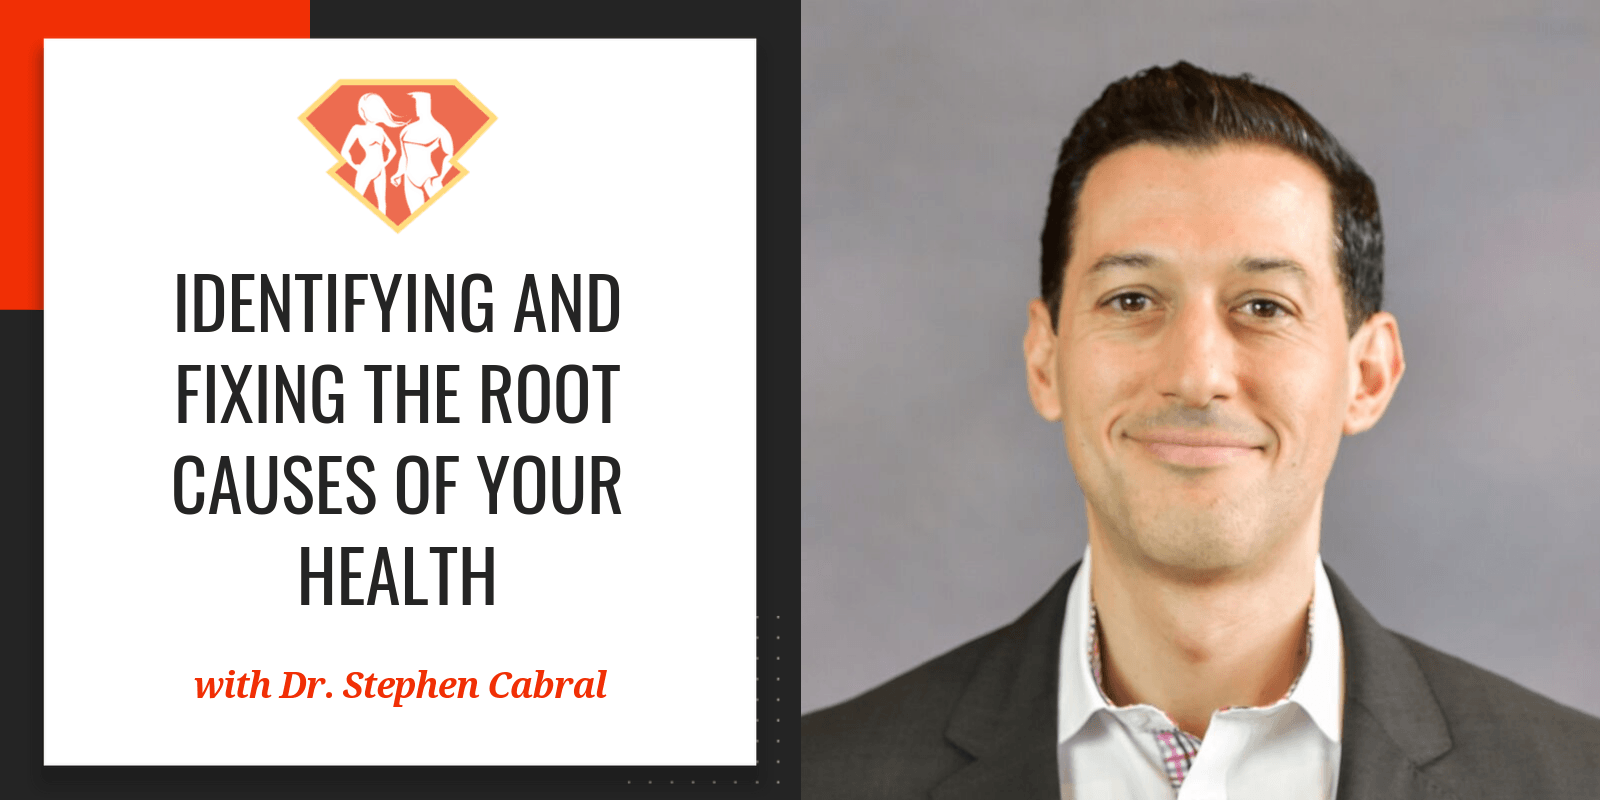 In this episode with Dr. Stephen Cabral, we talk on identifying the foundations of our health, and how a combination of medical fields holds the solutions.